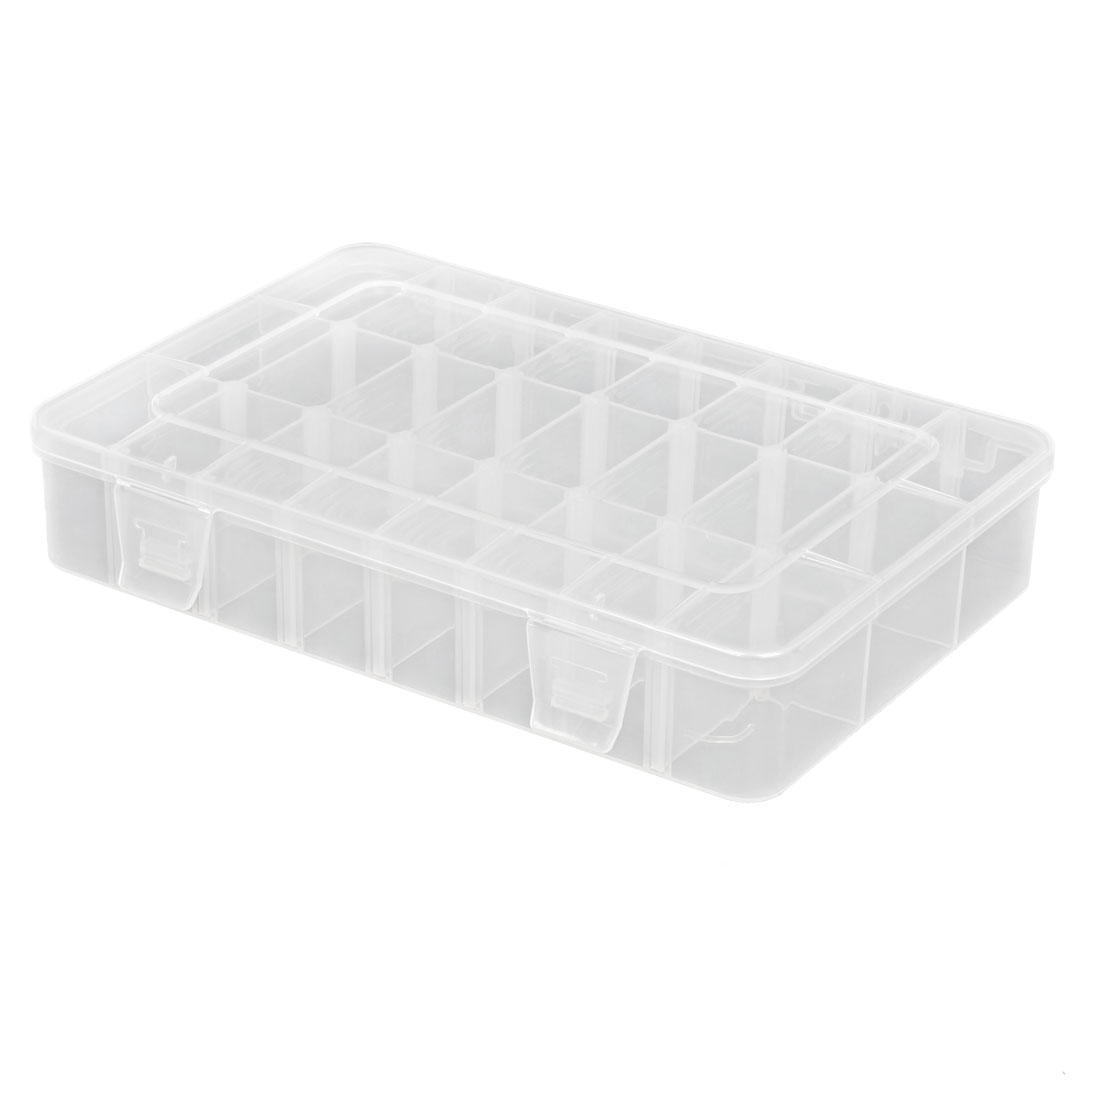 "Plastic 24 Sections Cuboid Jewelry Case Box Holder Container 7.9"" x 5.3"" x 1.4"""